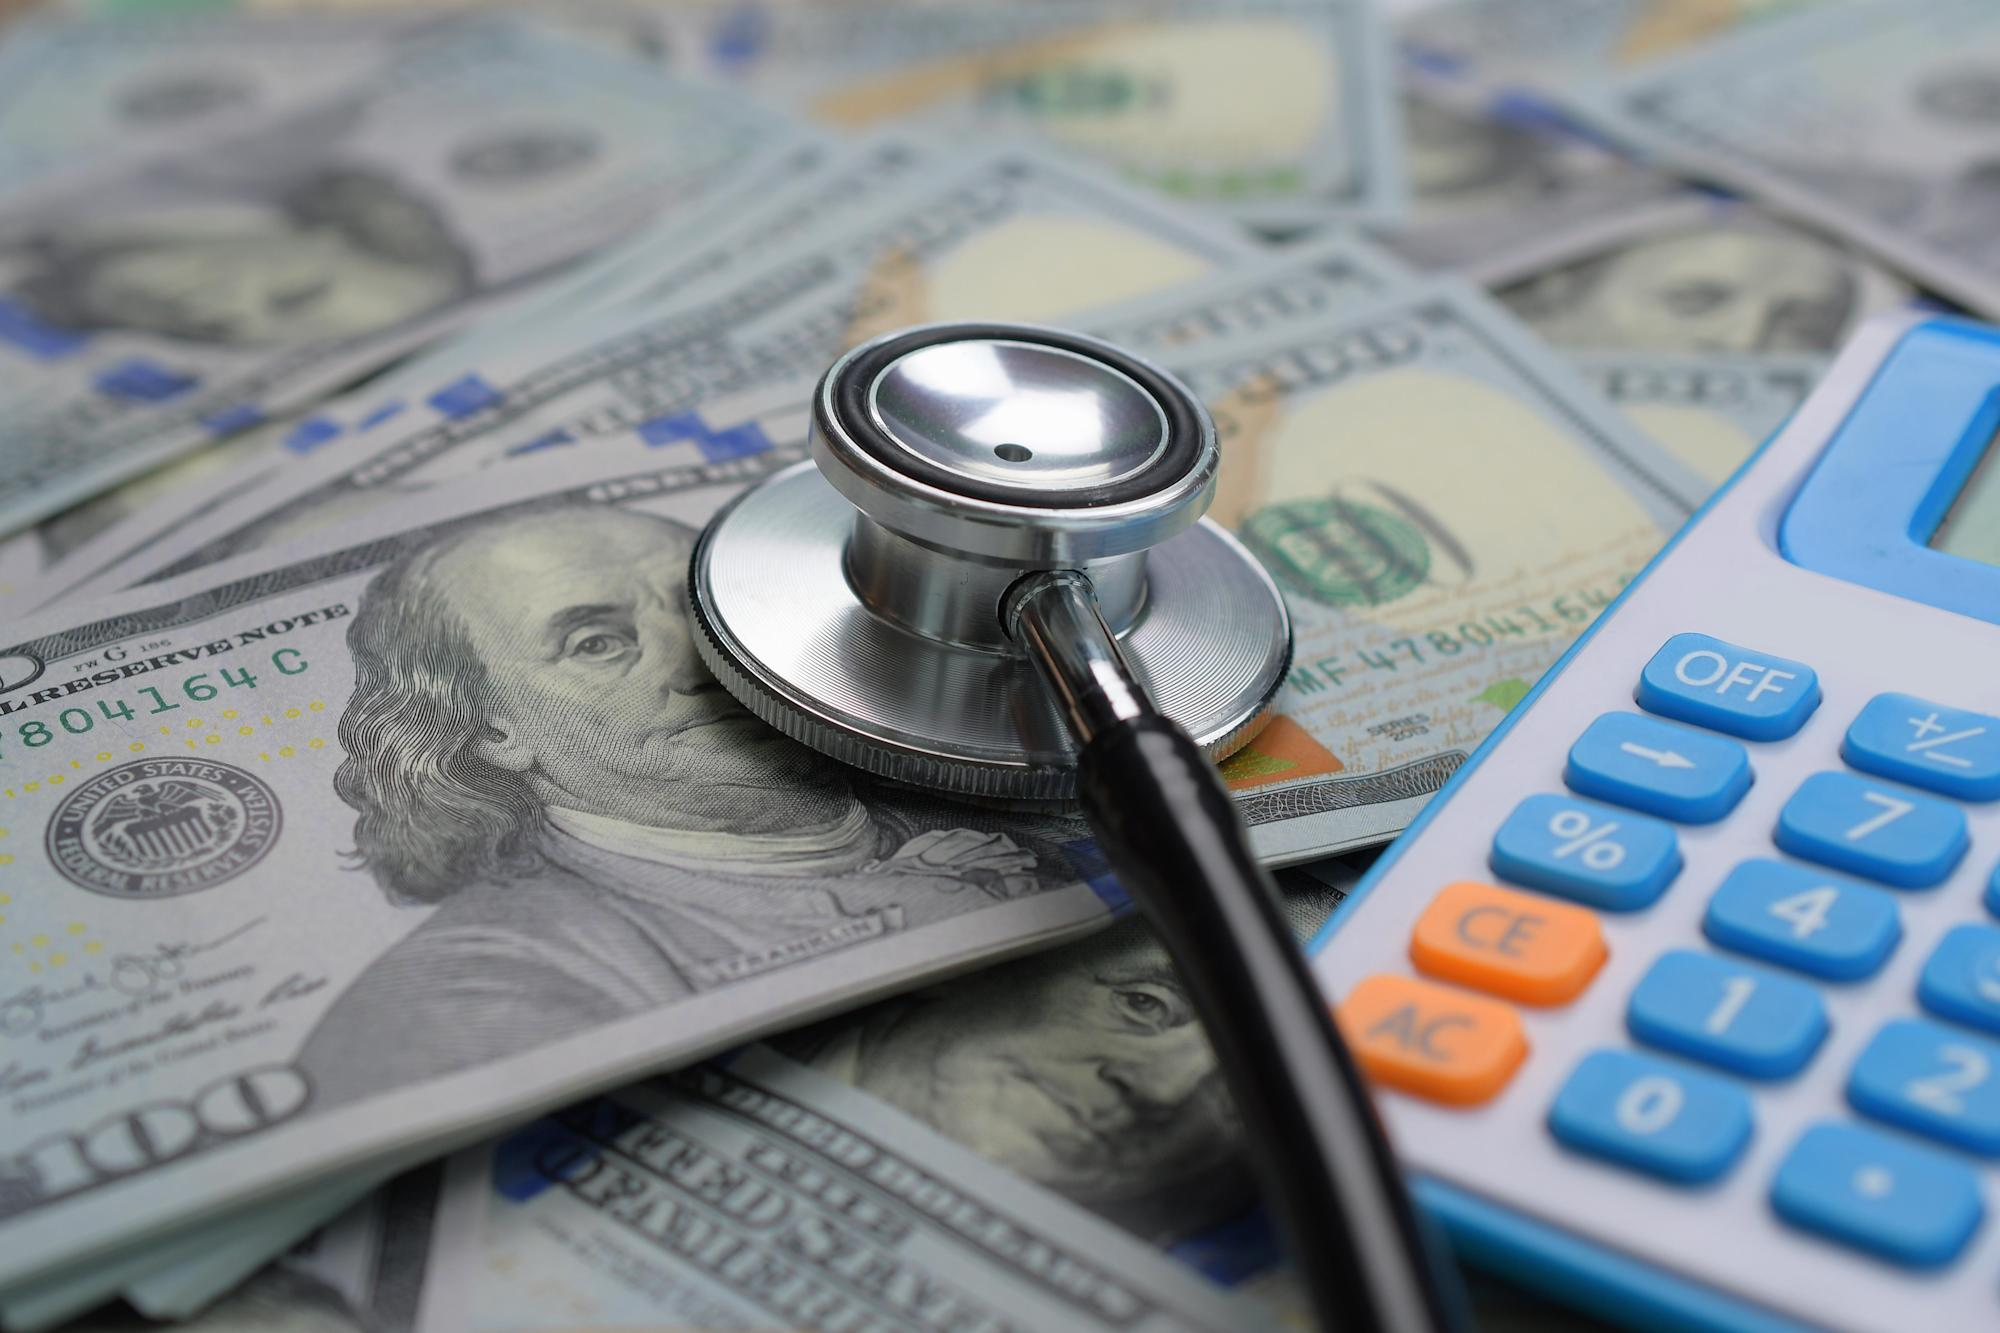 IRS rules gives high deductible plans richer benefits